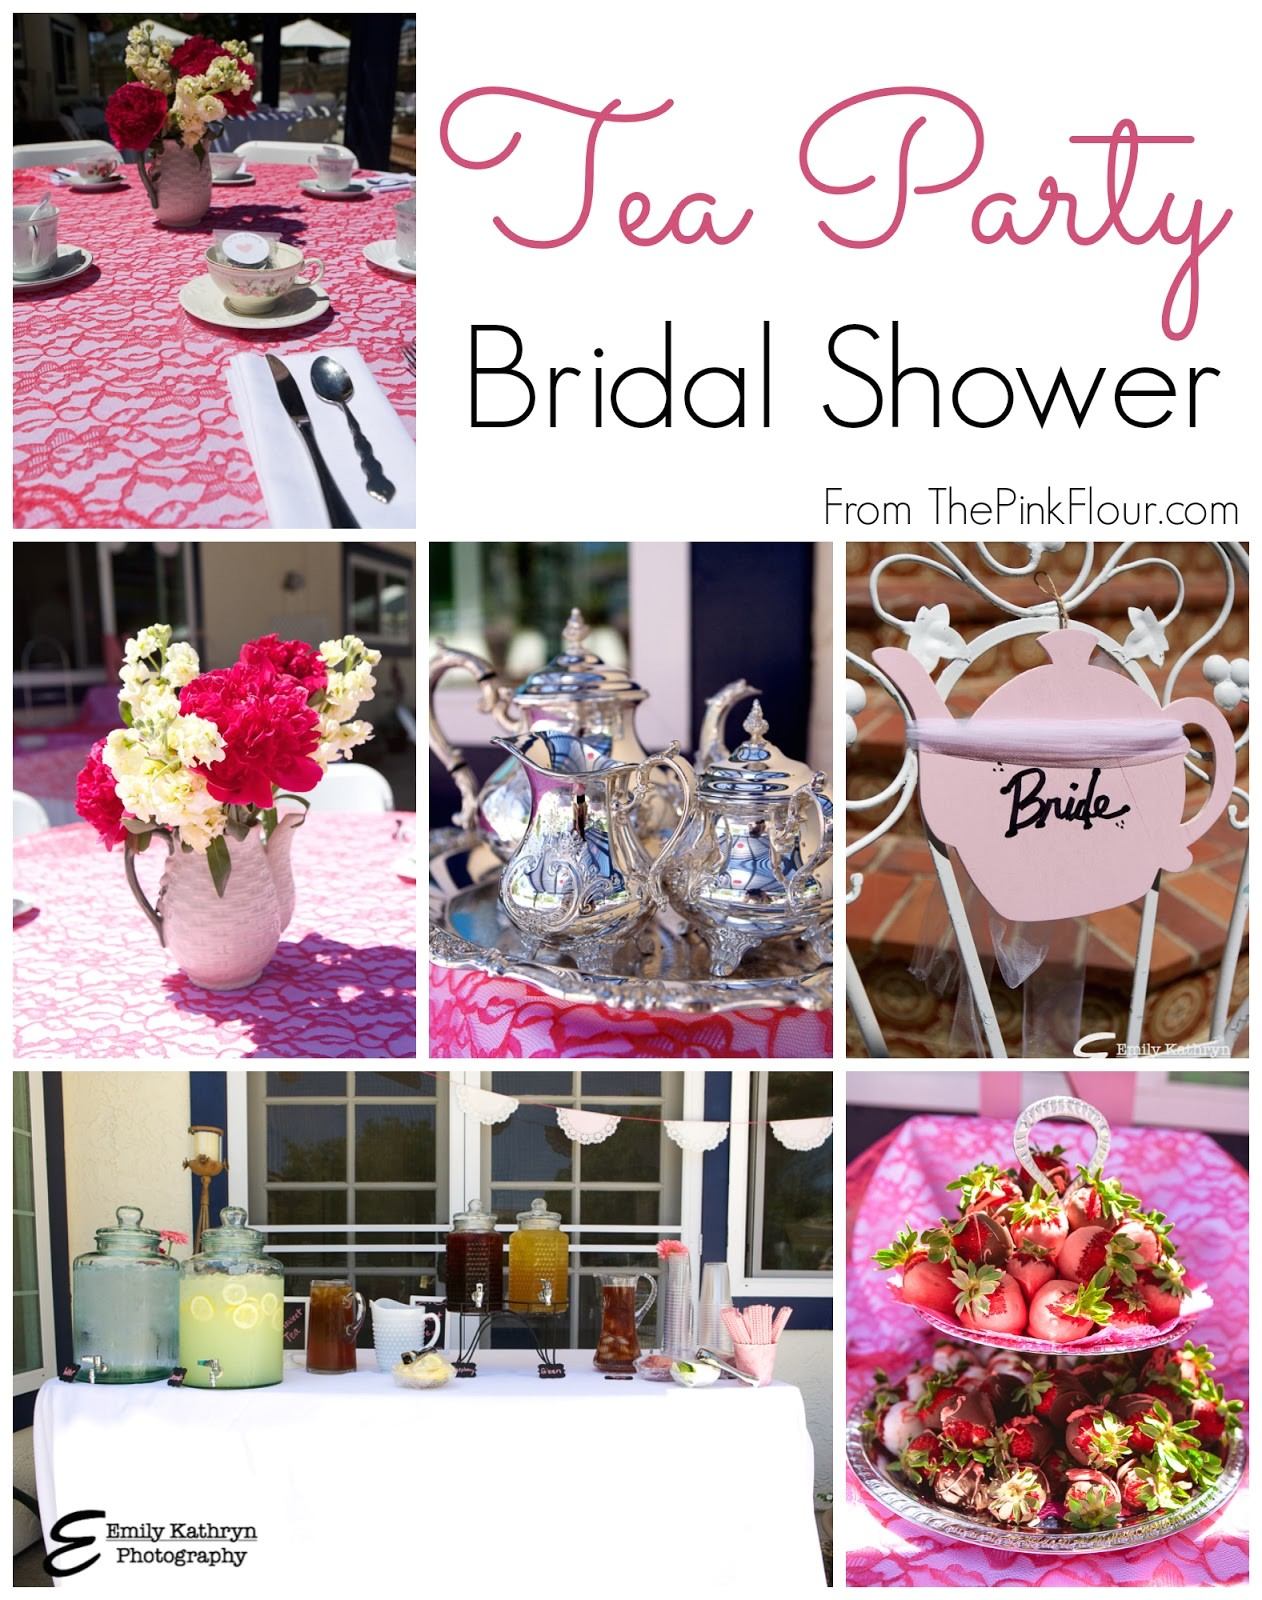 Bridal Shower themes for Spring Photo Tea Party Bridal Shower Image